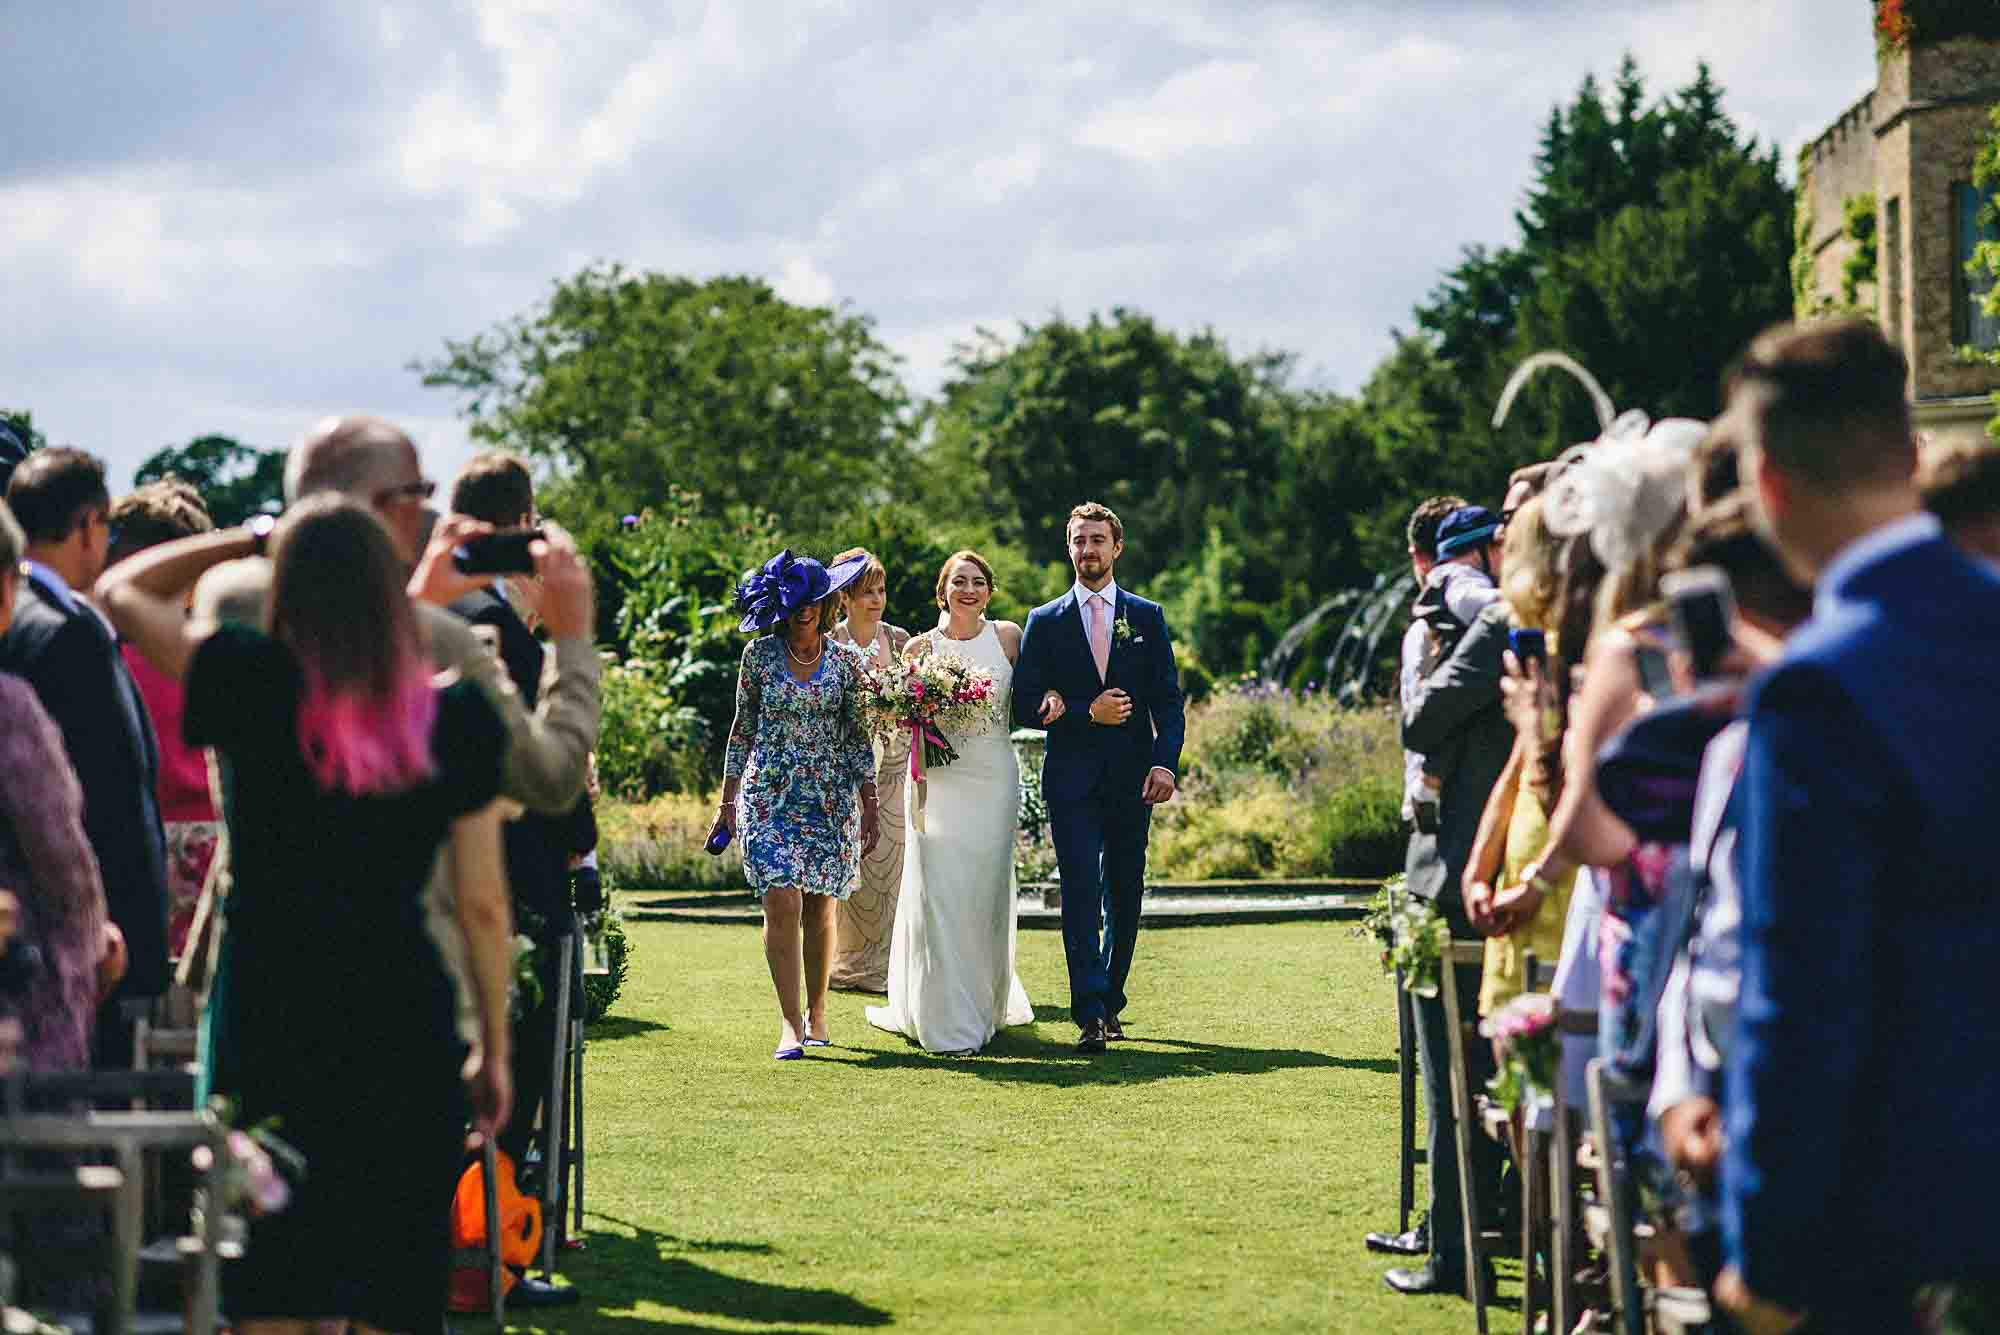 Narborough Hall Gardens wedding photography 20 Completed